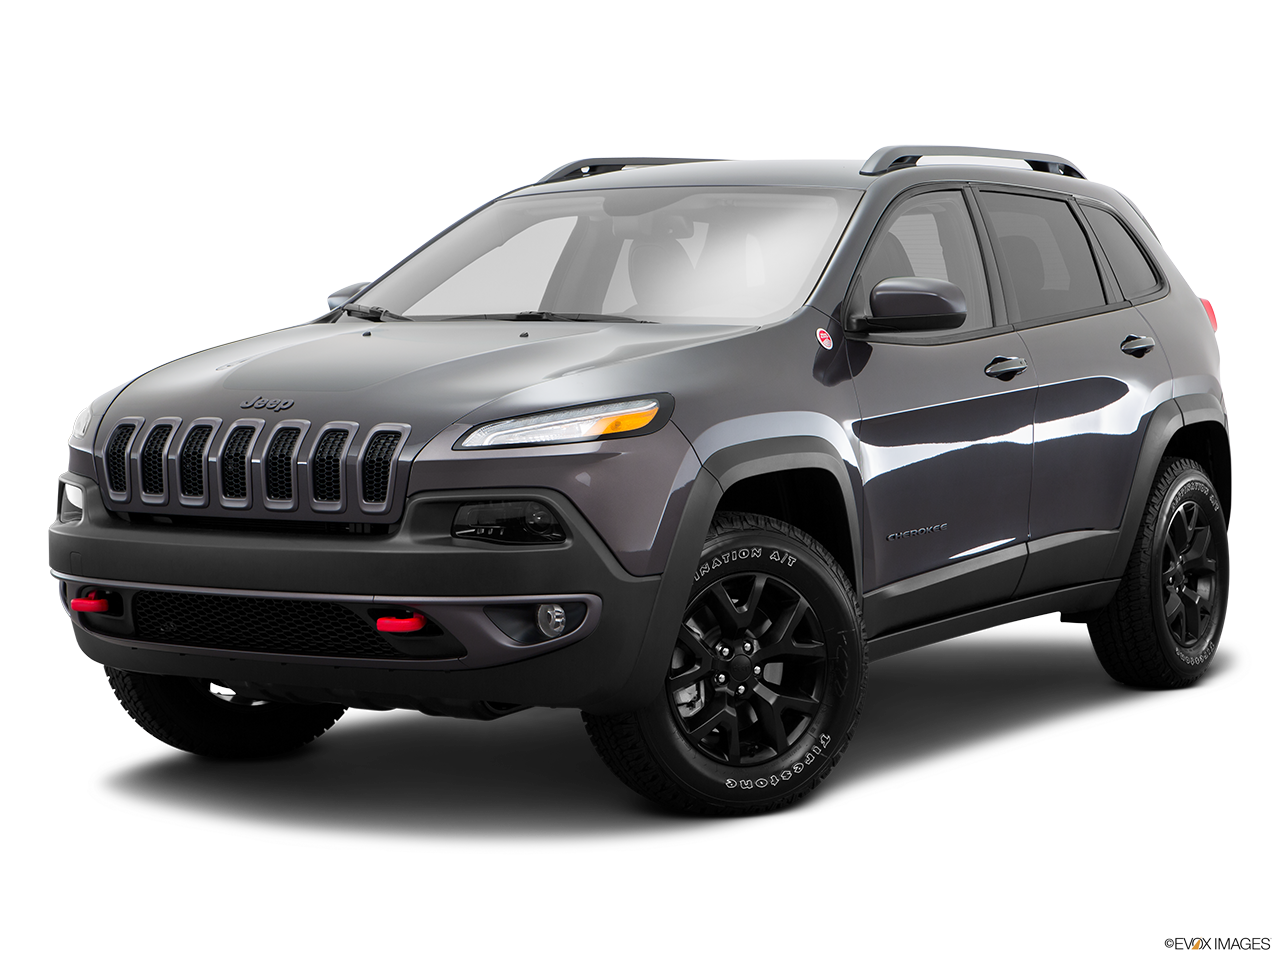 new 2016 jeep cherokee nashville chrysler dodge jeep ram. Black Bedroom Furniture Sets. Home Design Ideas